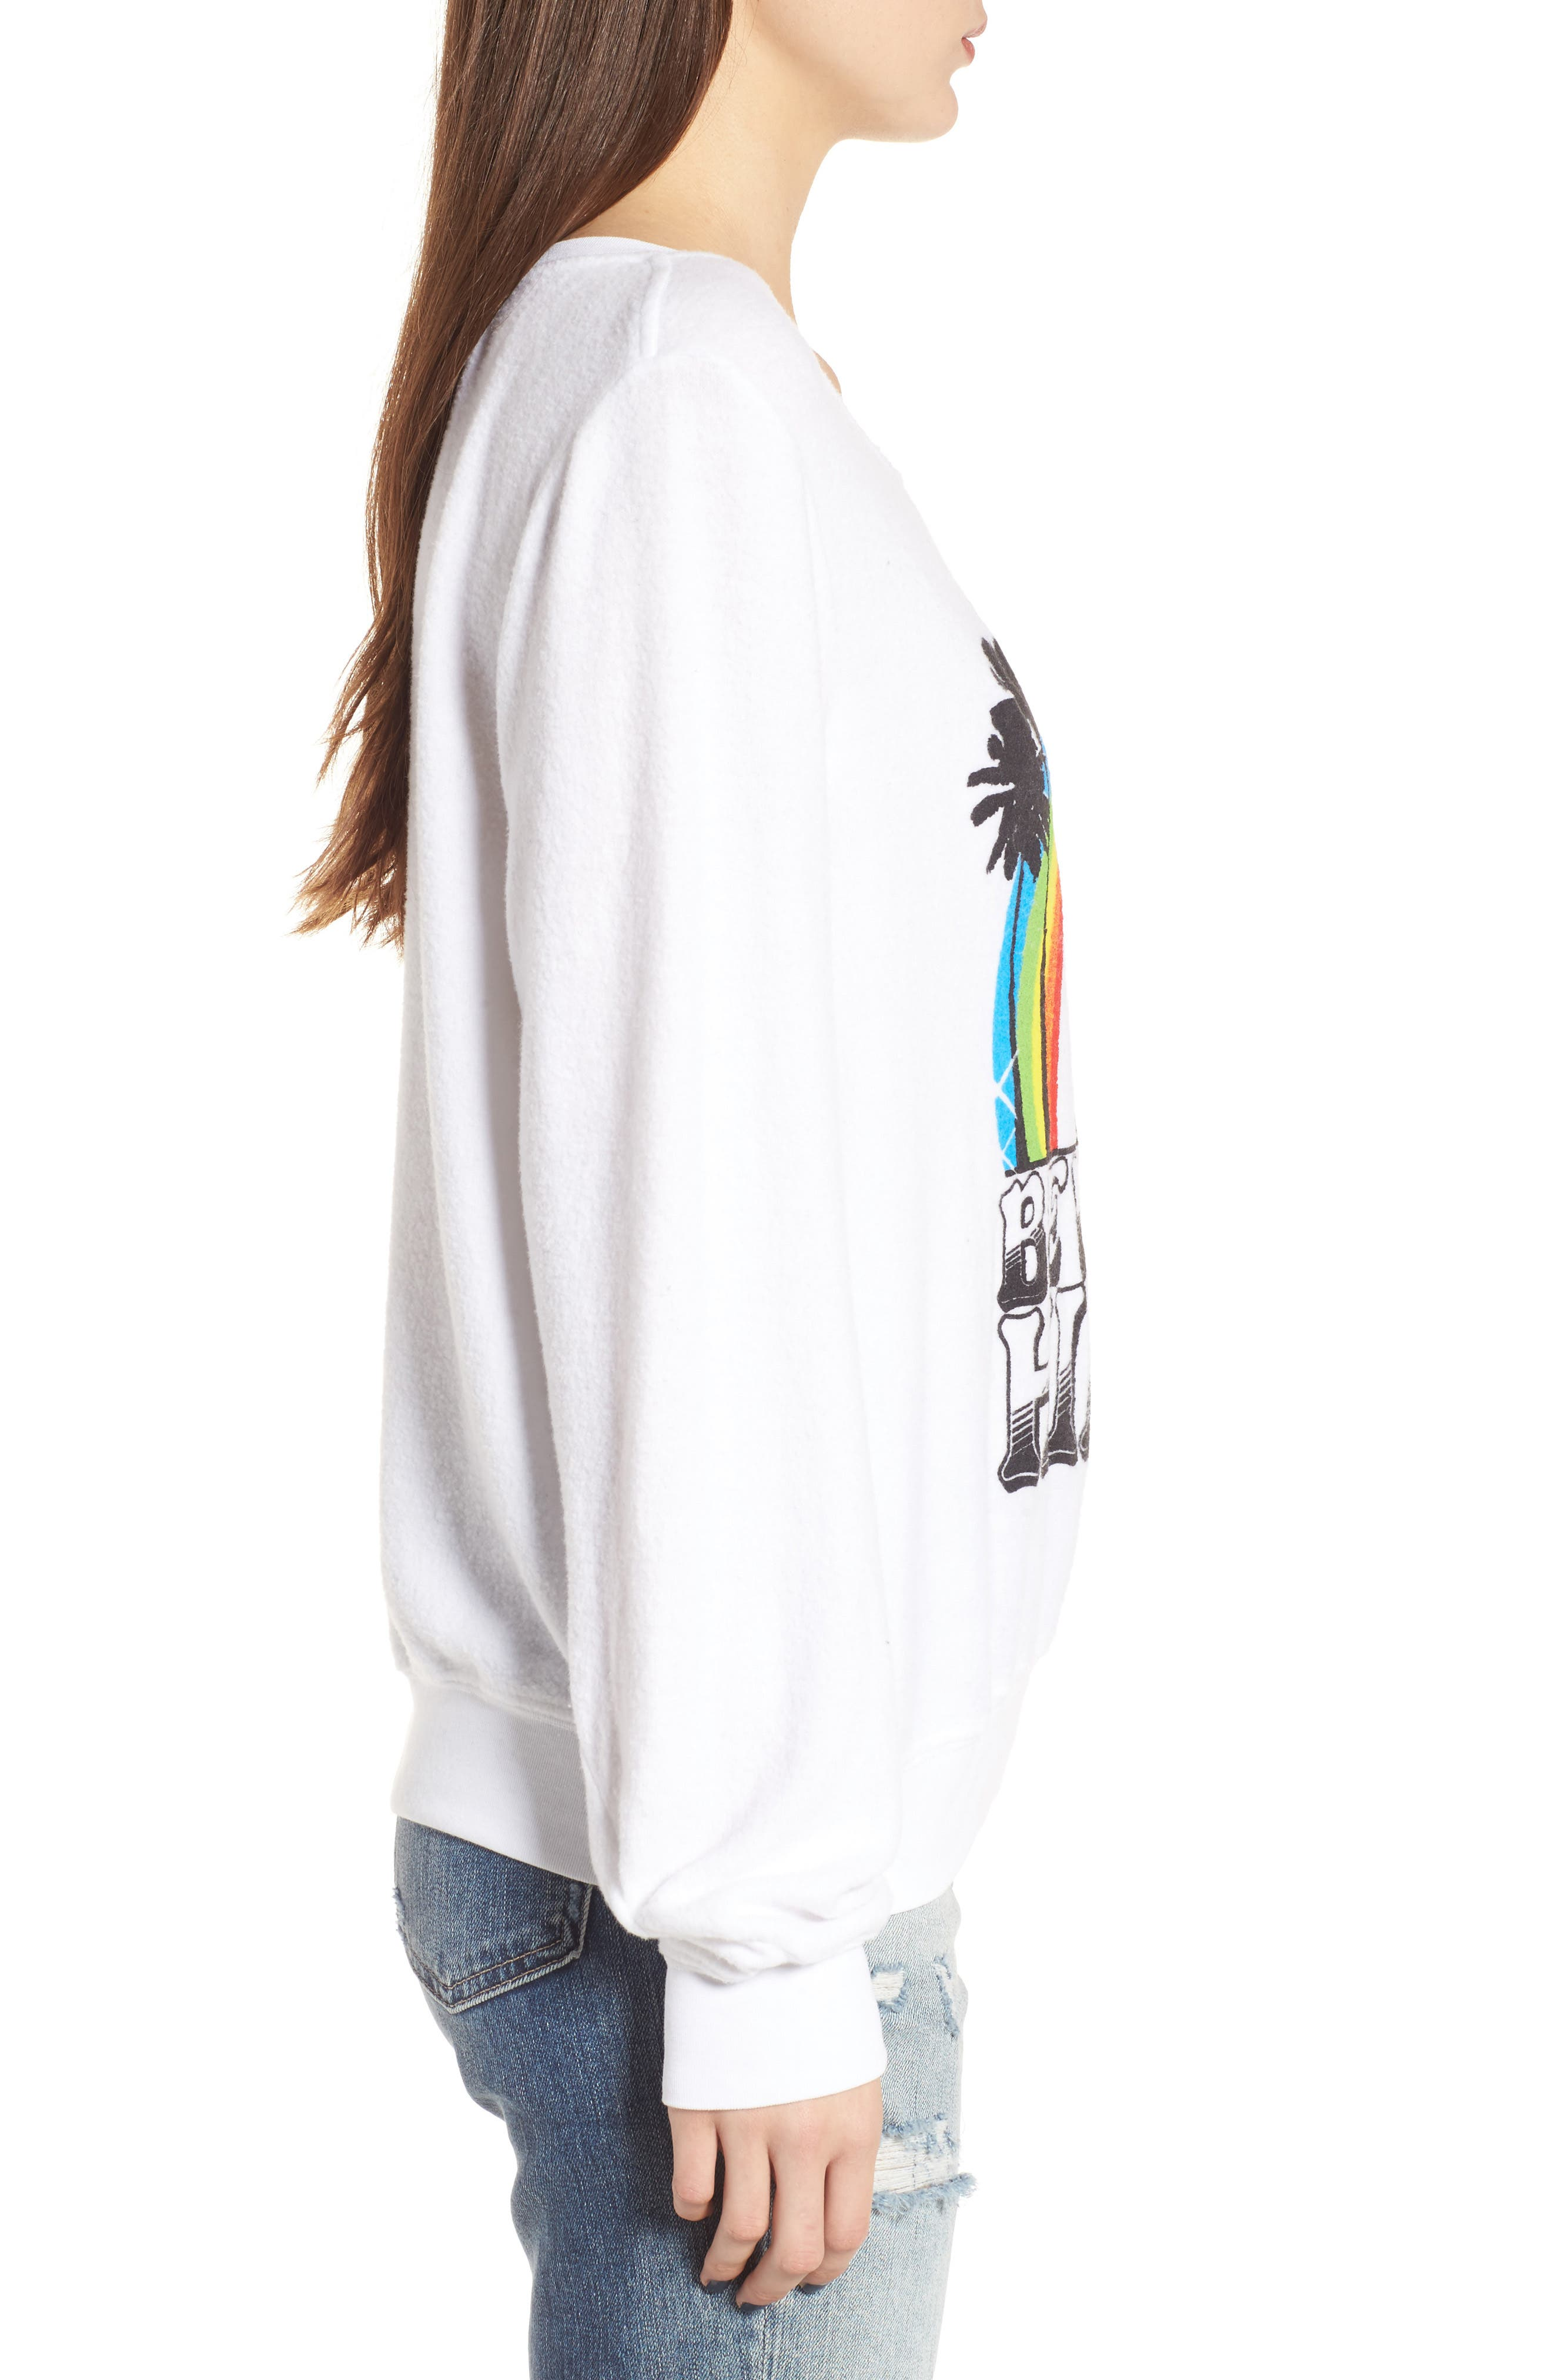 Beverly Hills Sweatshirt,                             Alternate thumbnail 3, color,                             Clean White